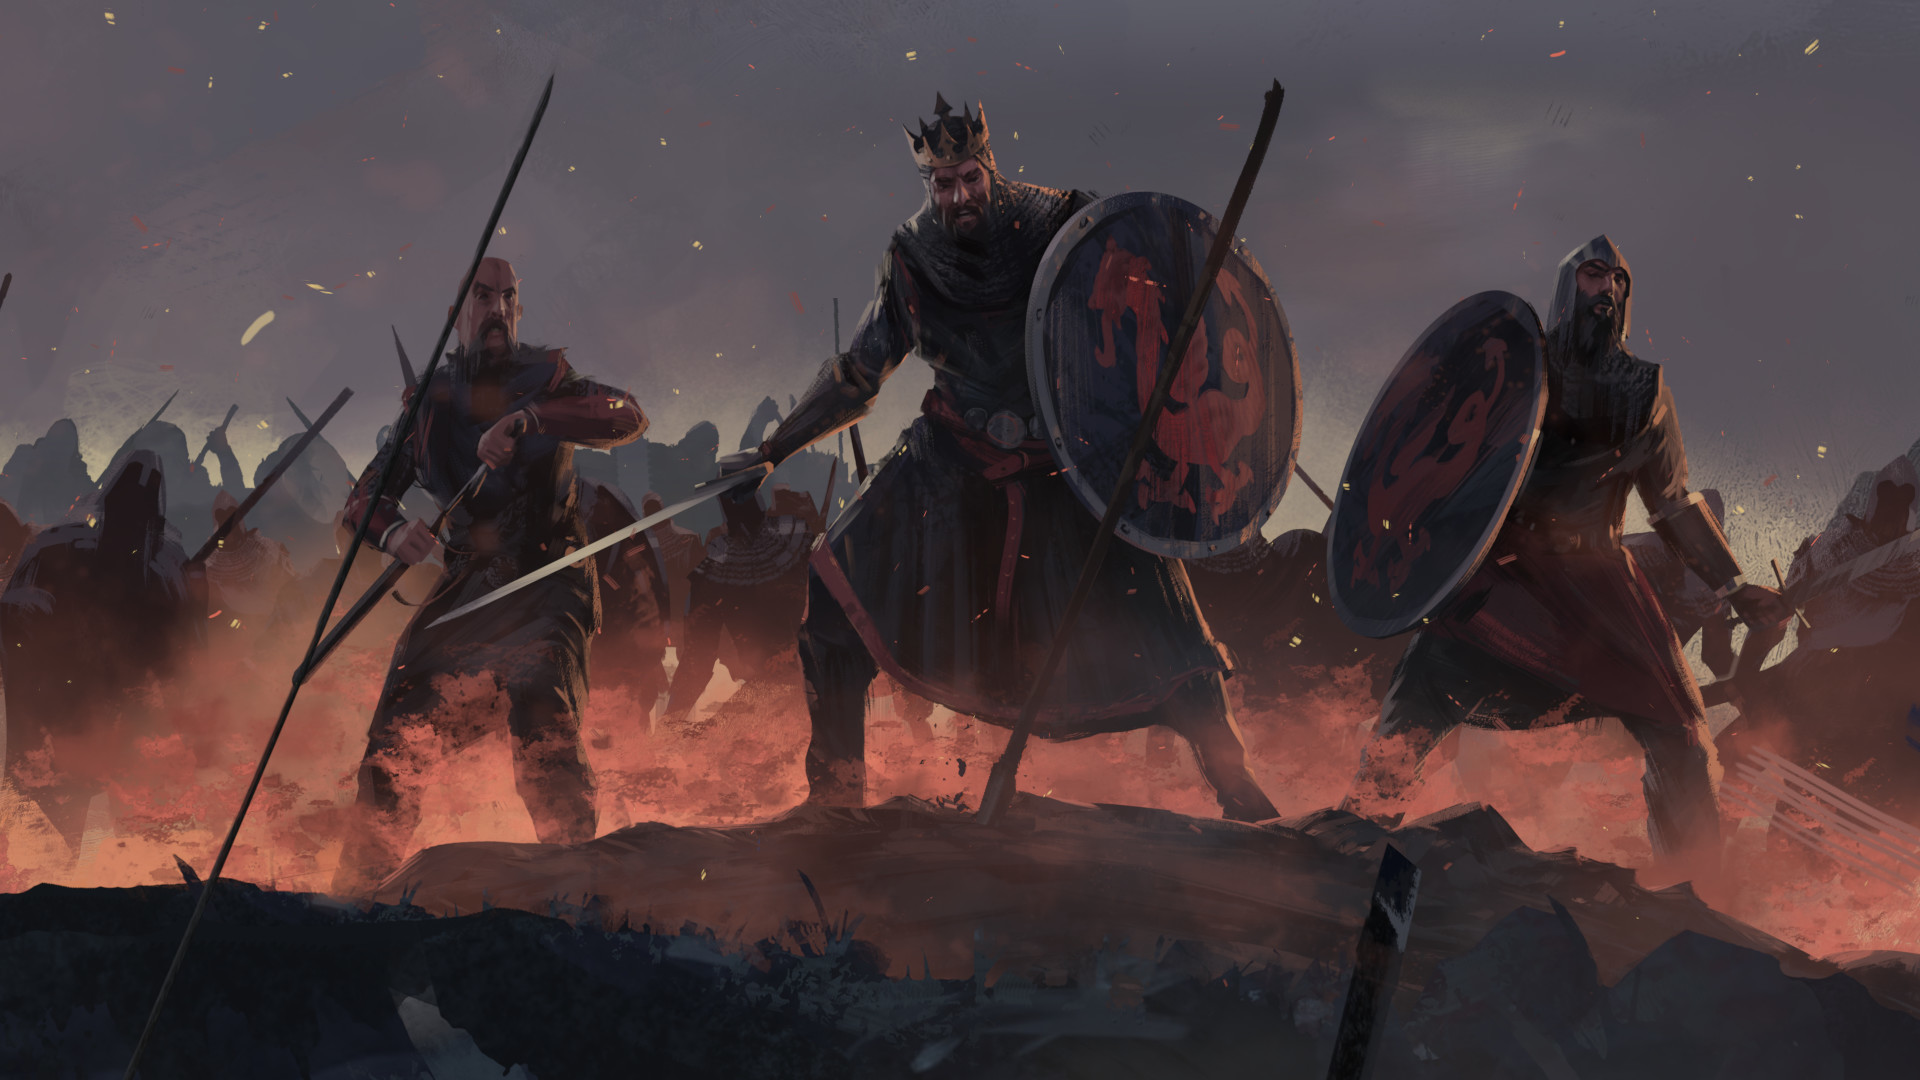 Total War is getting a Viking-inspired spin-off next year